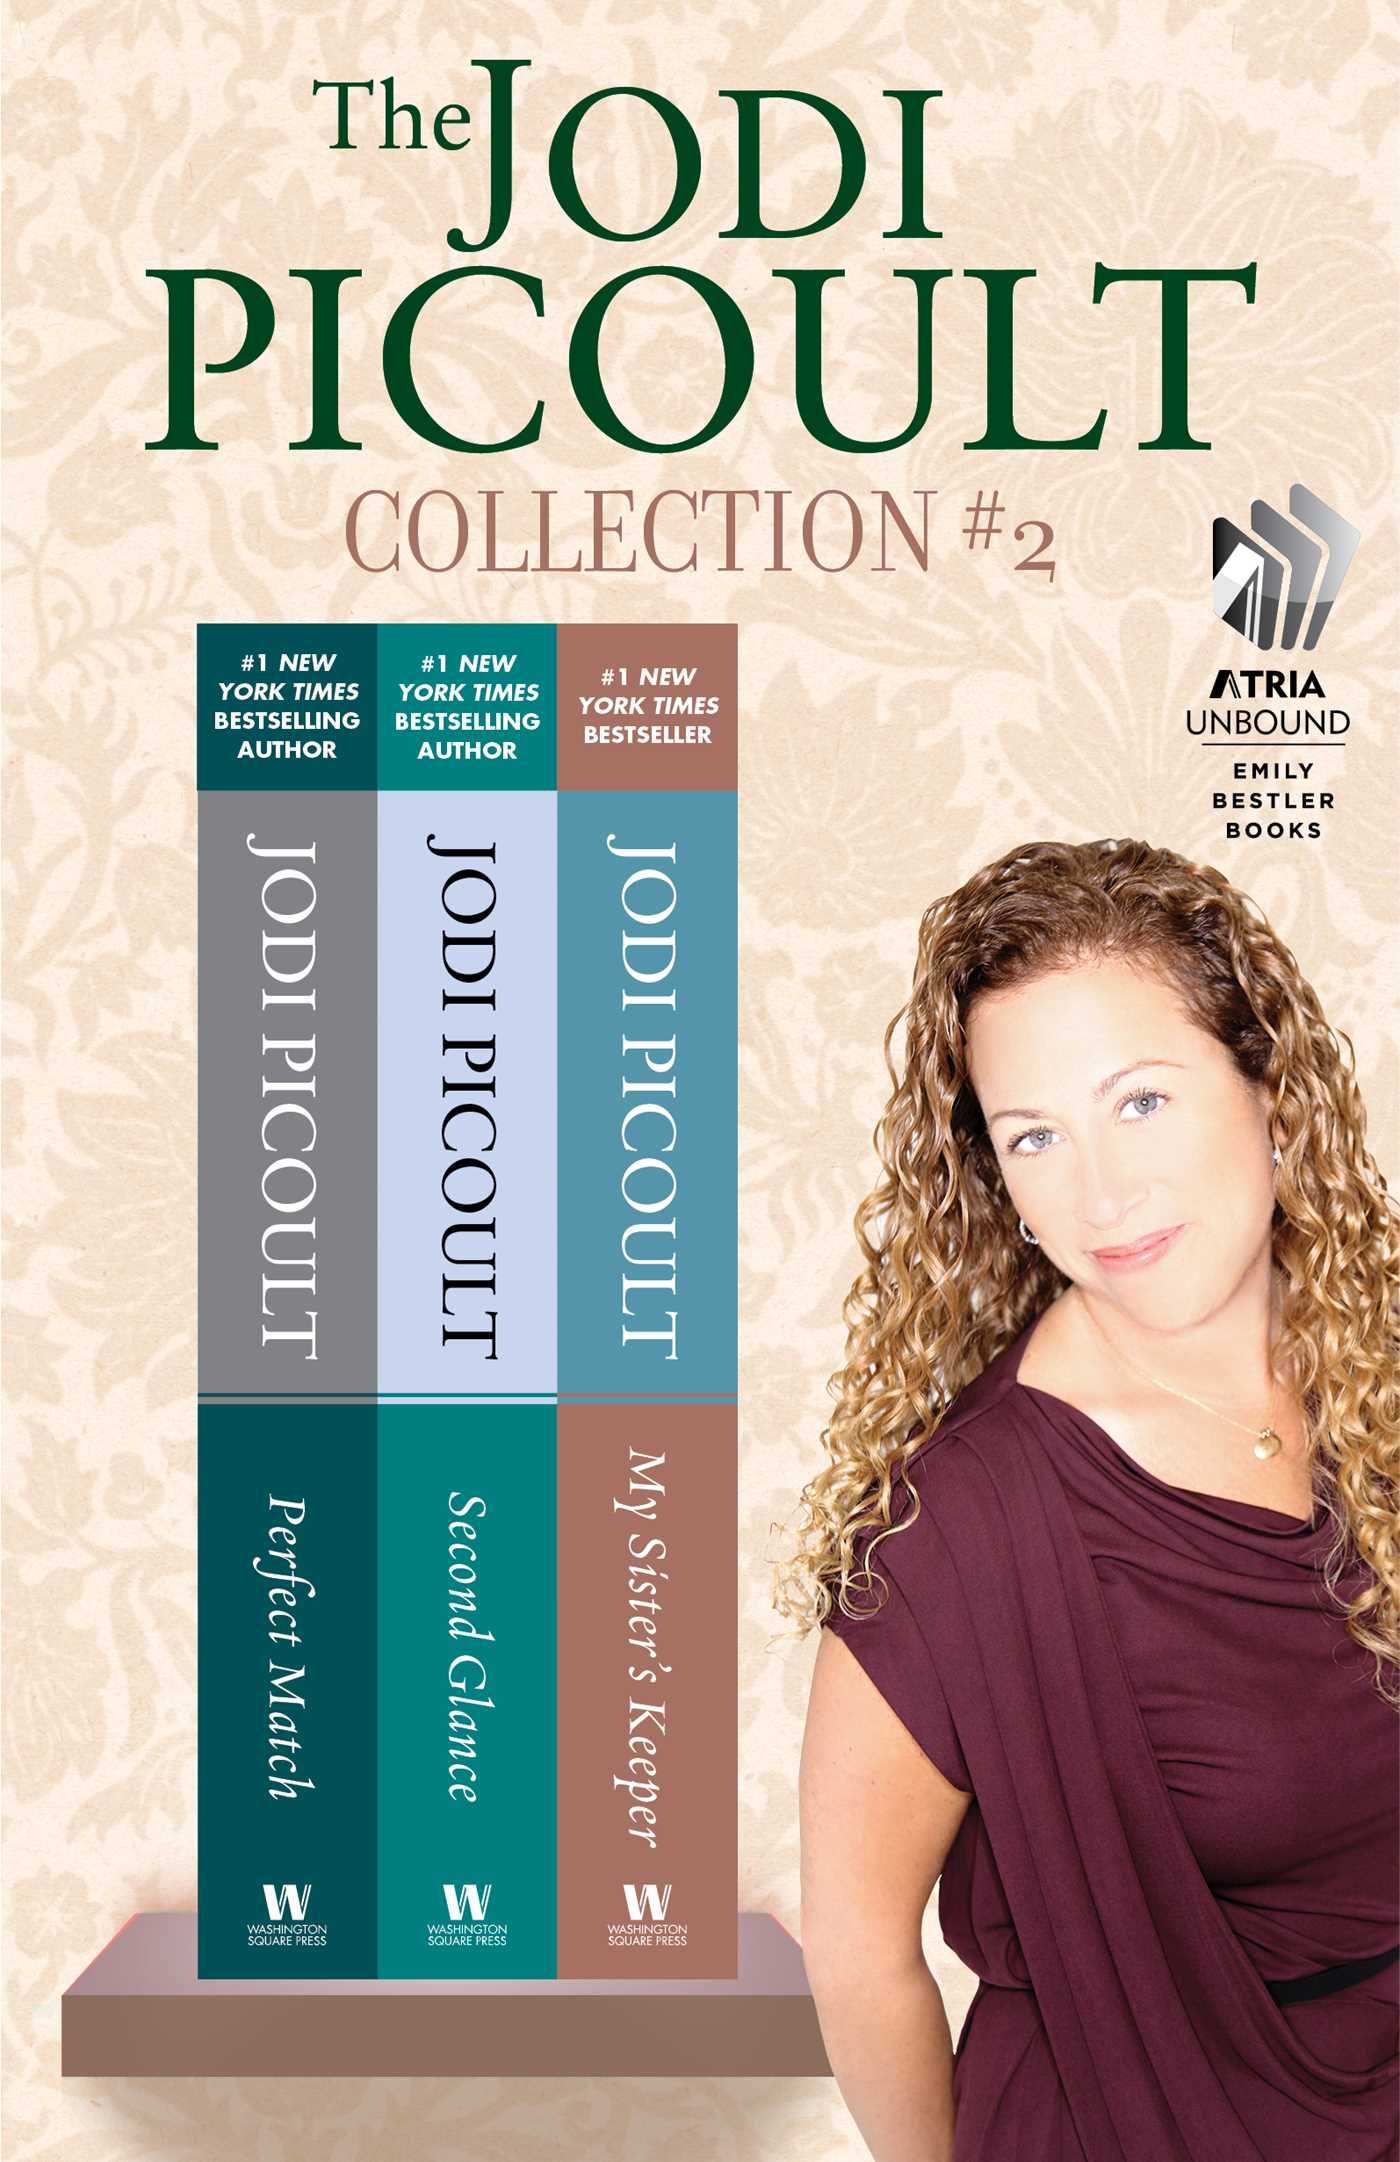 Jodi picoult collection 2 9781476703879 hr